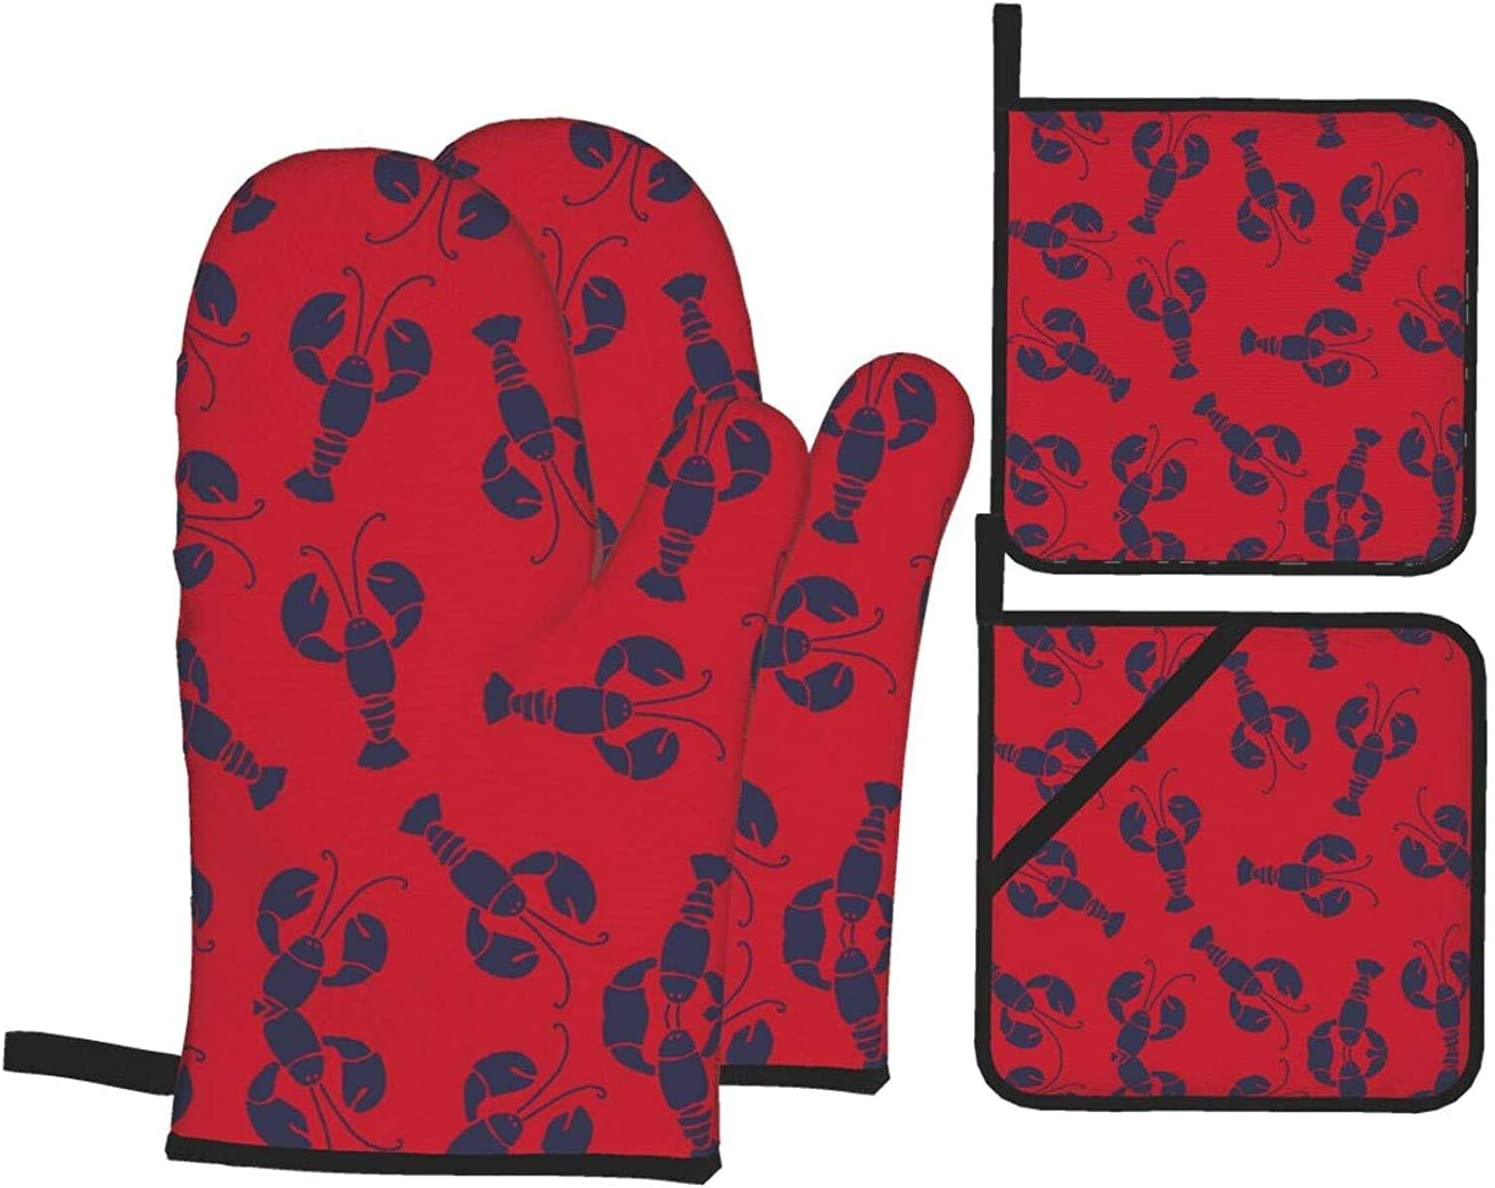 Lobster Red Oven Mitts and Pot Holders Resistant Hot of Colorado Springs Mall P 4 Excellent Sets